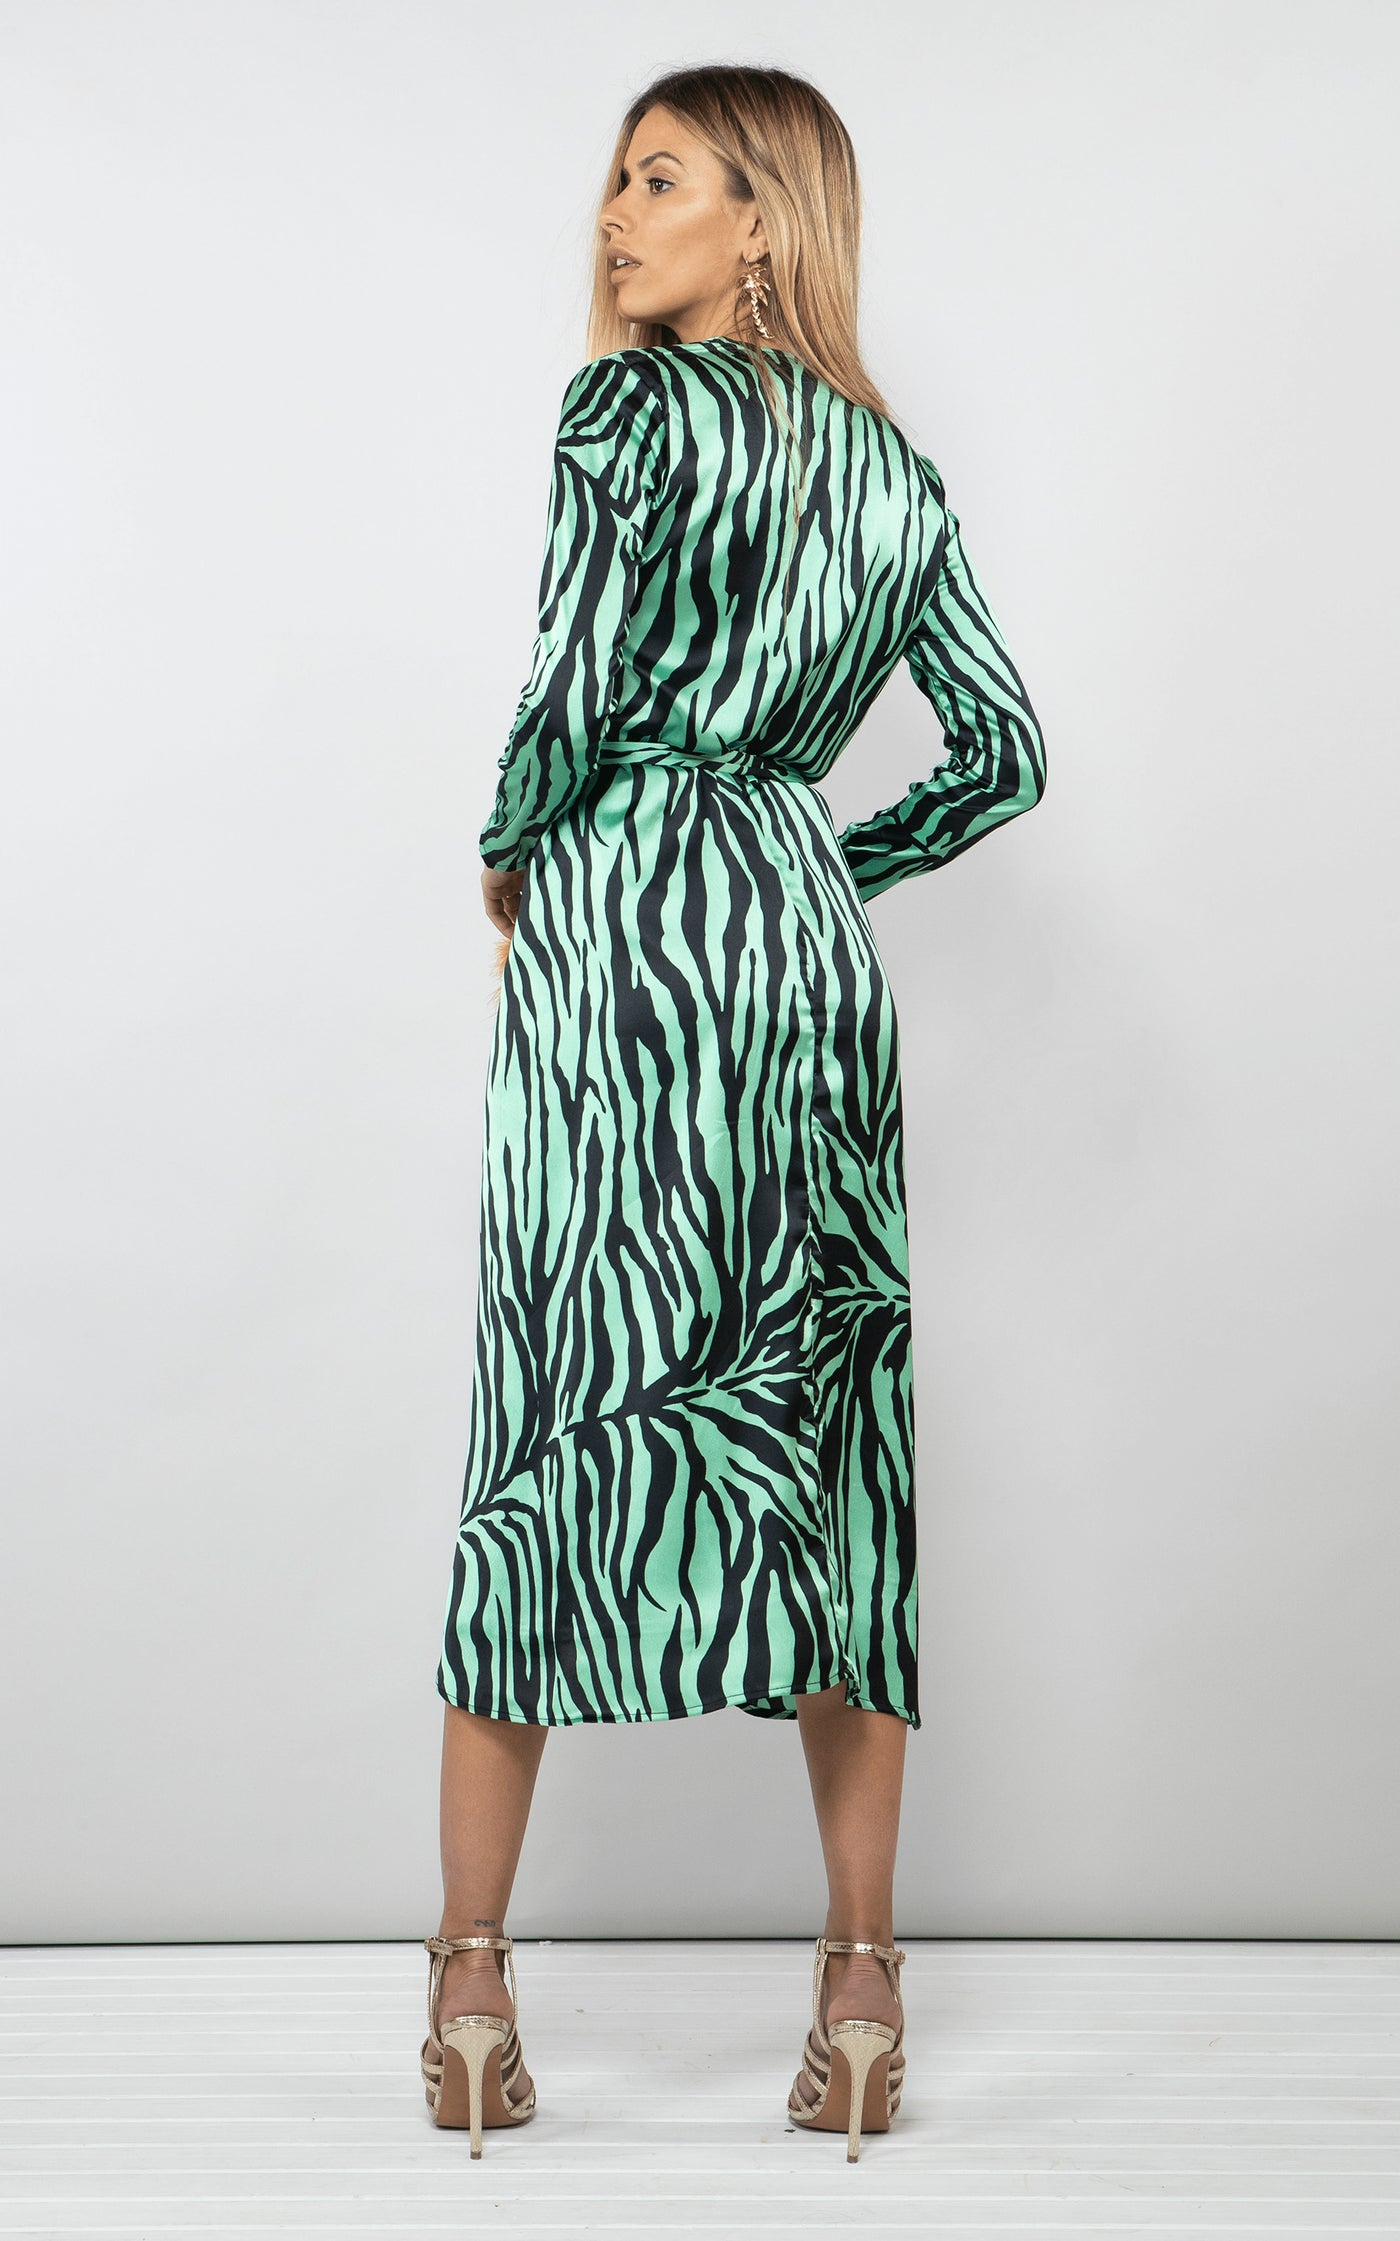 Backward-facing model wears Dancing Leopard Yondal Dress in green zebra print